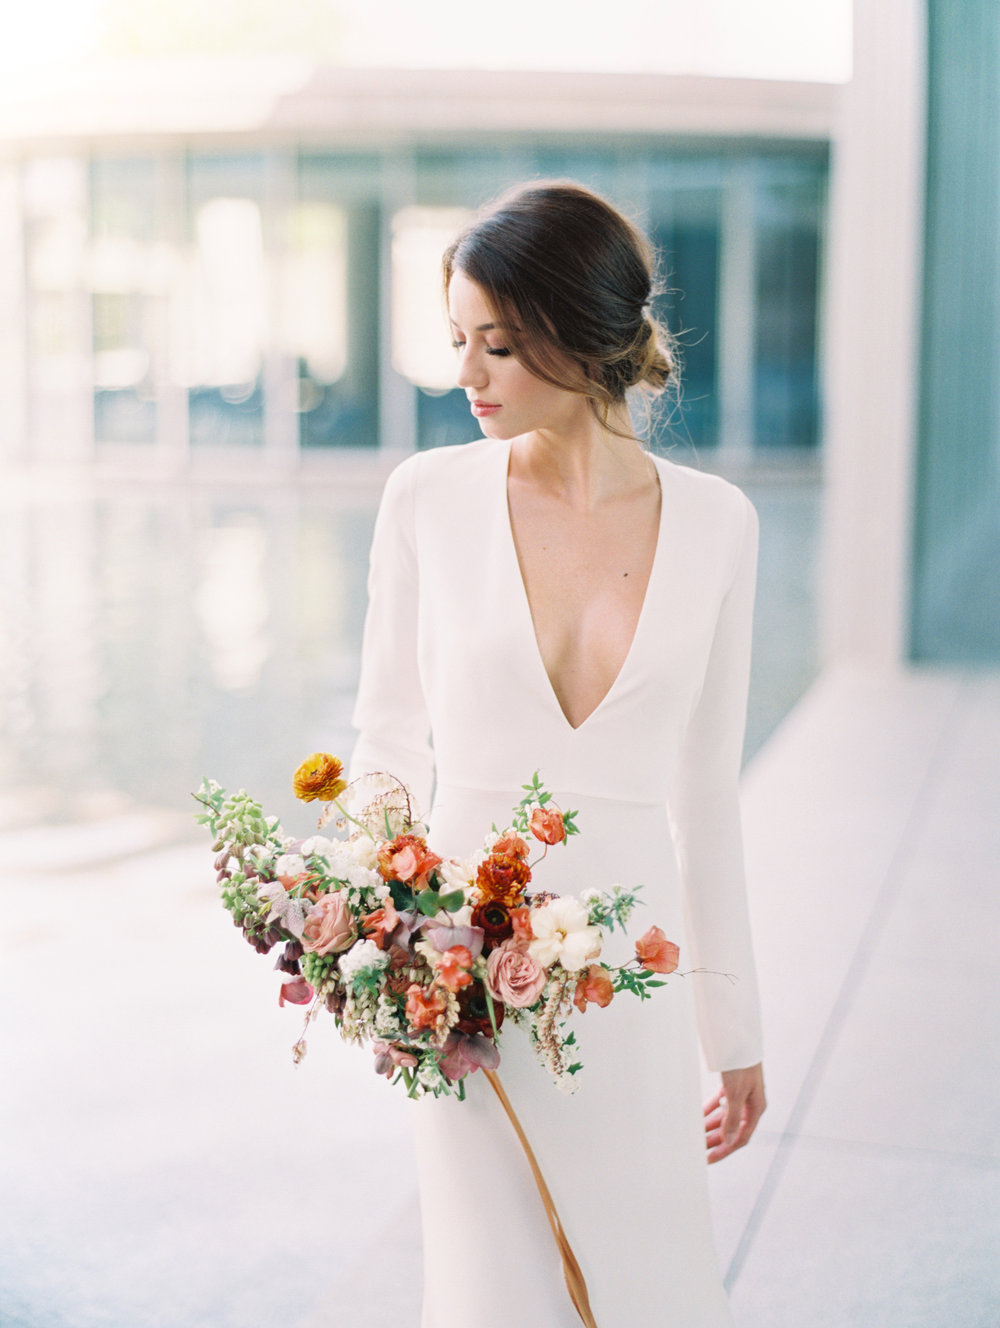 Lyons-Events-Modern-Minimalist-Wedding-Bouquet